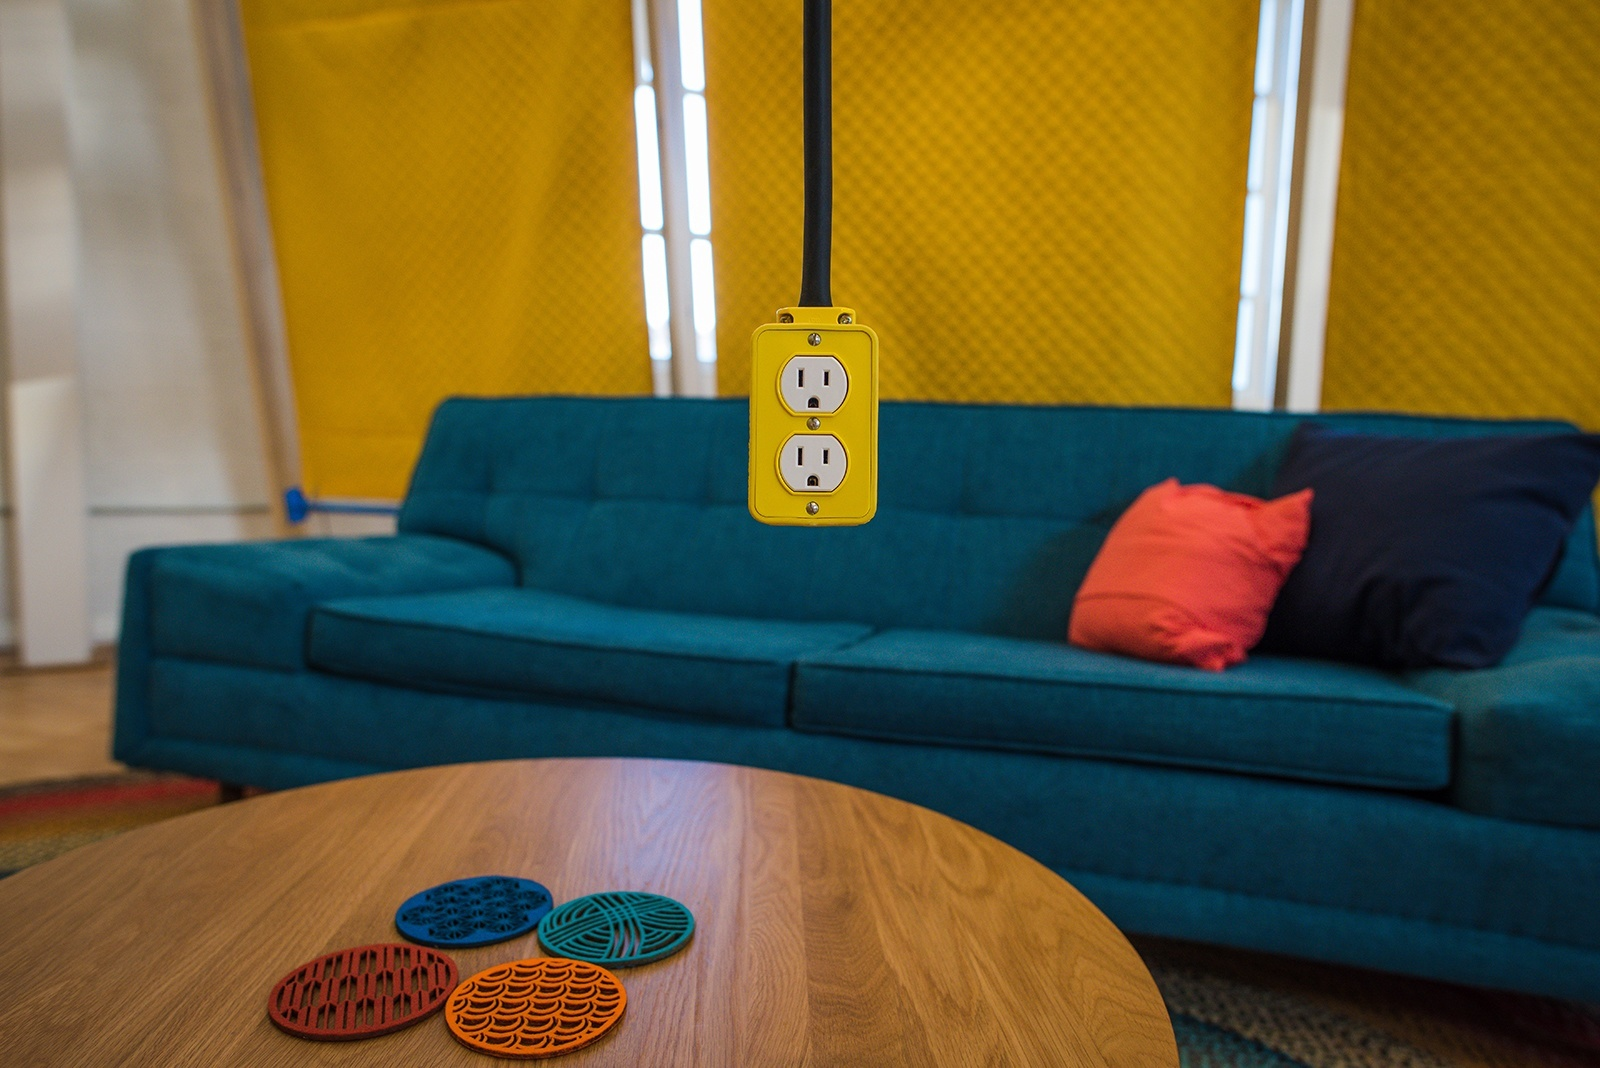 pictures to hang in office. bright yellow outlets hang from the ceiling, providing power and a colorful, industrial touch pictures to in office l